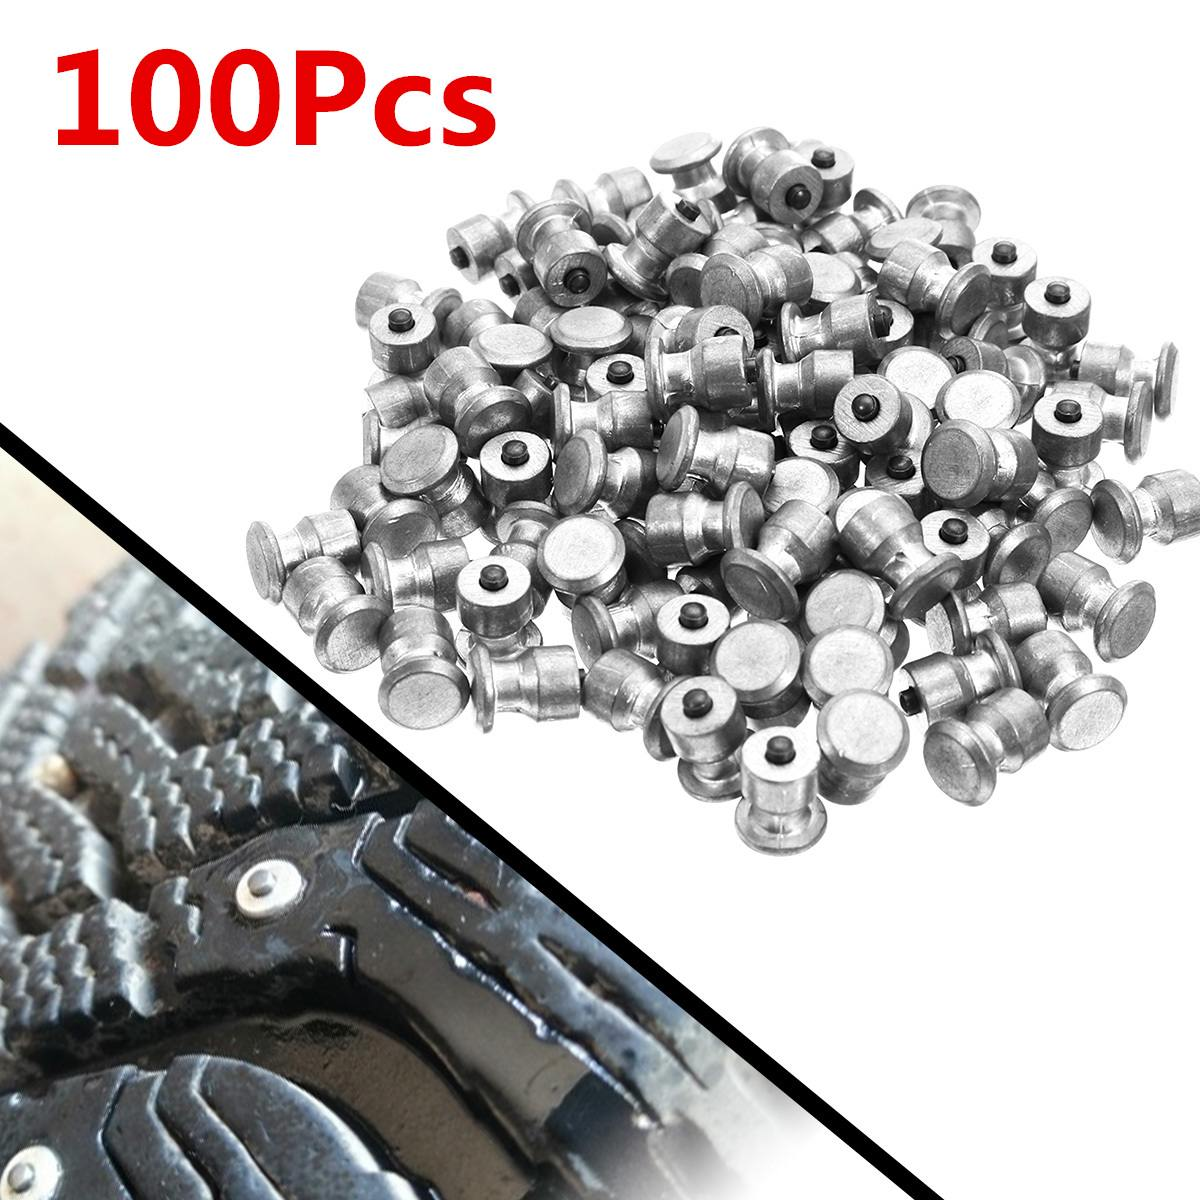 100pcs Winter Wheel Lugs Car Tires Studs Screw Snow Spikes Tyre Sled Snow Chains Studs For Shoes ATV Car Motorcycle Tire 8x10mm